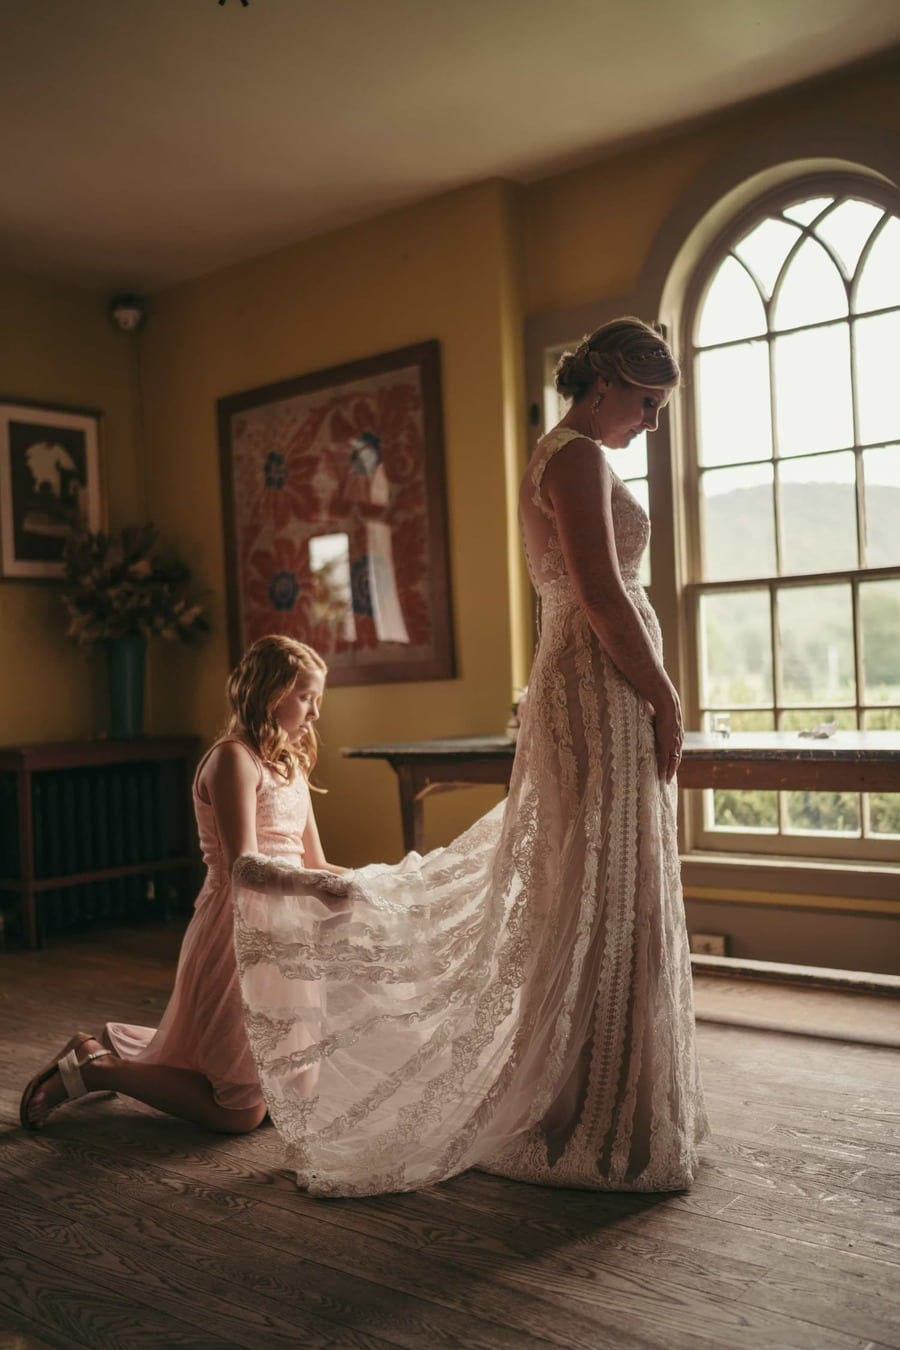 Flower girl fixes bride's dress as light from window comes into room and shines through lace dress before wedding ceremony.